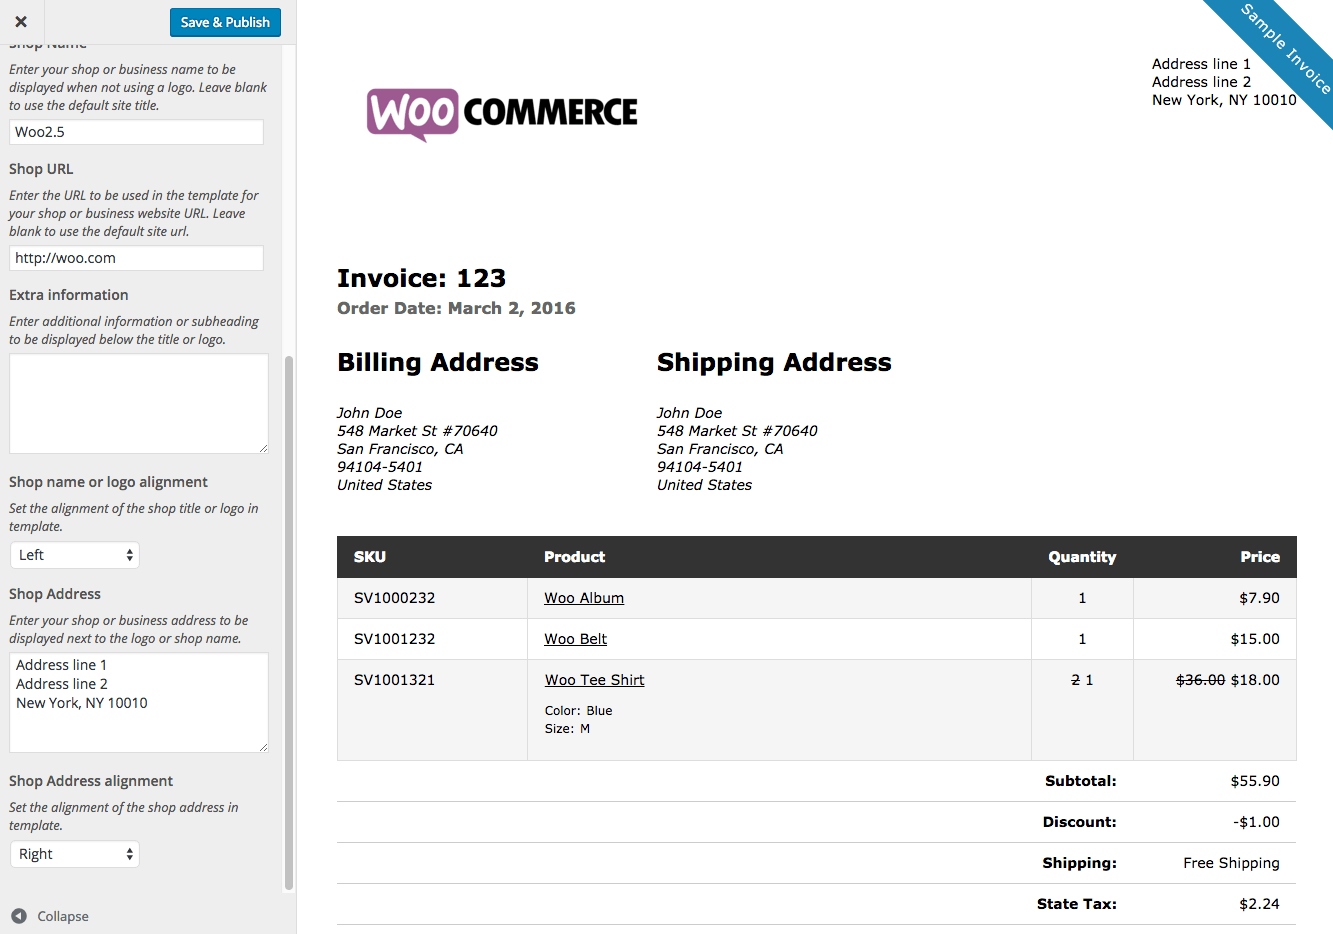 Ediblewildsus  Mesmerizing Print Invoices Amp Packing Lists  Woocommerce With Goodlooking Woocommerce Print Invoices  Packing Lists Customizer With Cool Free Invoicing Software For Small Business Also Download Invoice In Addition General Invoice And Invoice Car As Well As Dealer Invoice Price Ford Additionally Invoice App Iphone From Woocommercecom With Ediblewildsus  Goodlooking Print Invoices Amp Packing Lists  Woocommerce With Cool Woocommerce Print Invoices  Packing Lists Customizer And Mesmerizing Free Invoicing Software For Small Business Also Download Invoice In Addition General Invoice From Woocommercecom